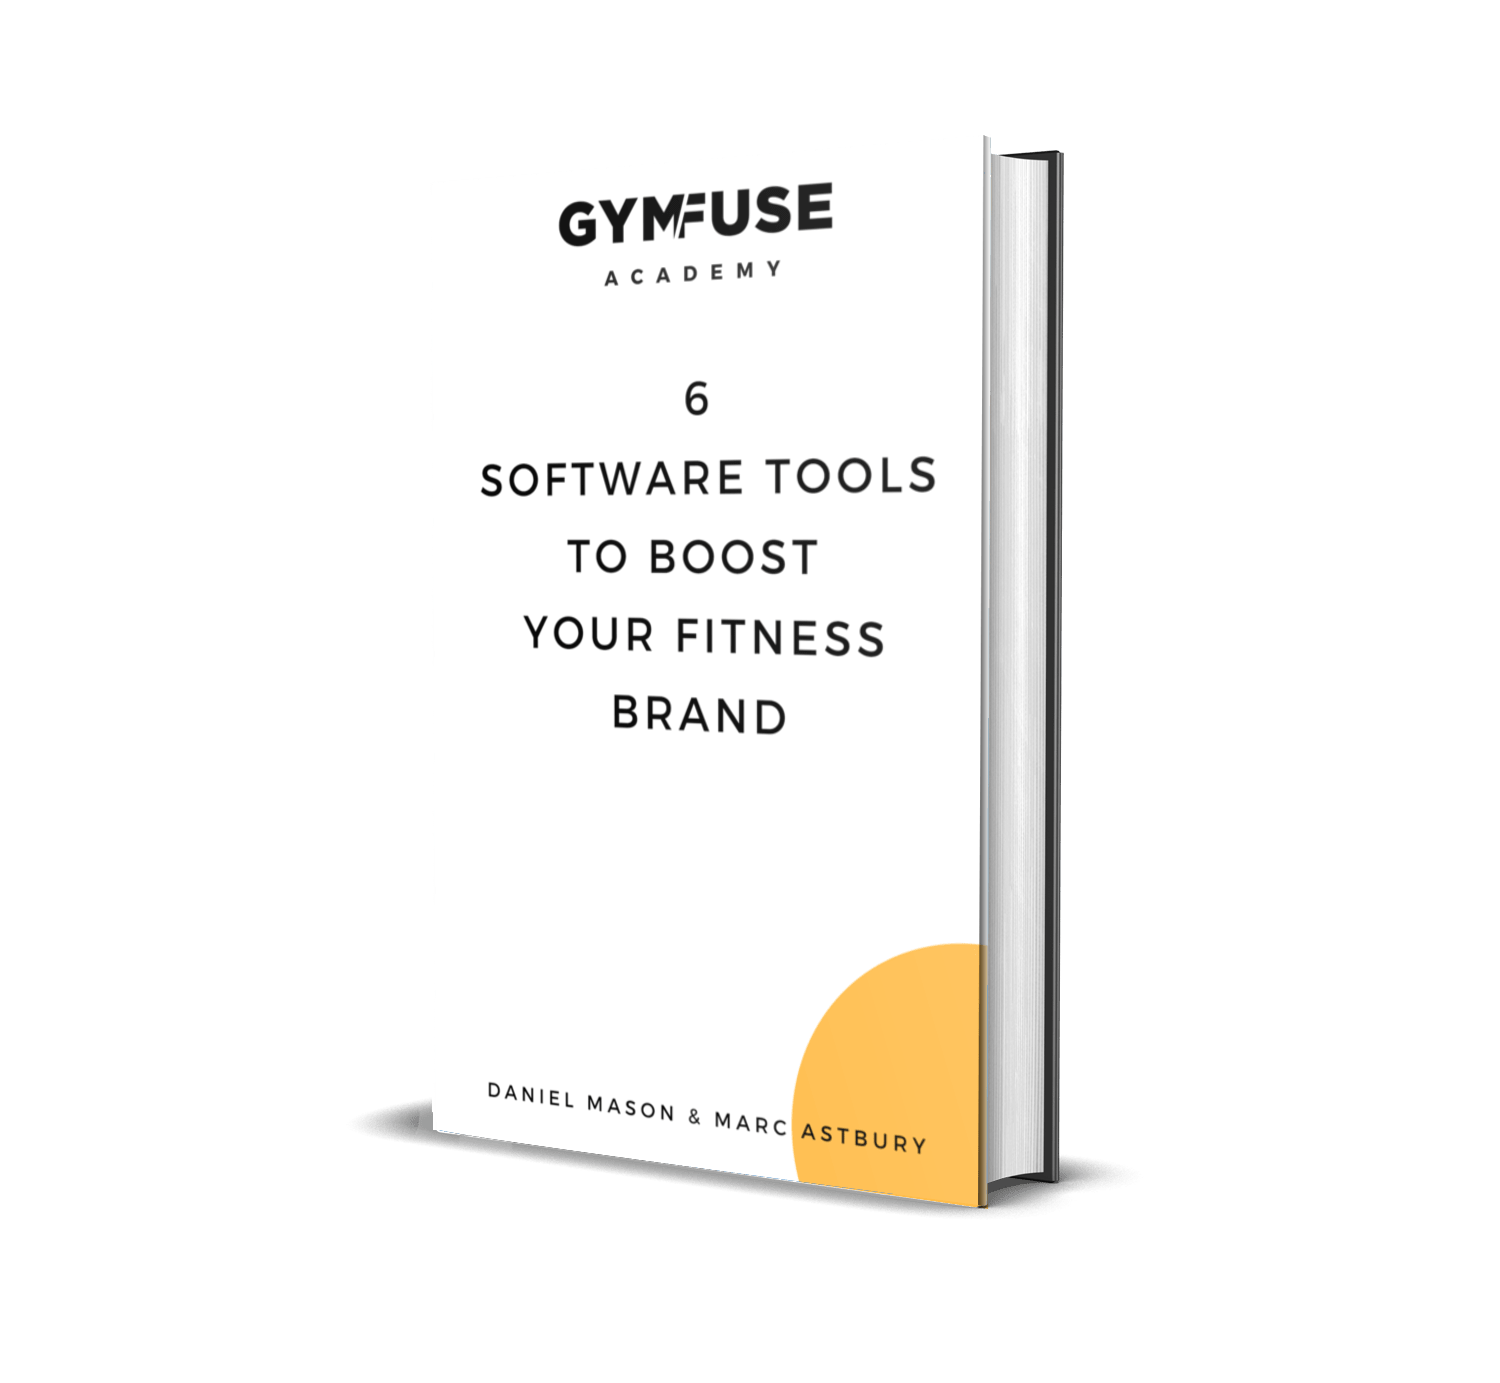 6 software tools for your fitness brand